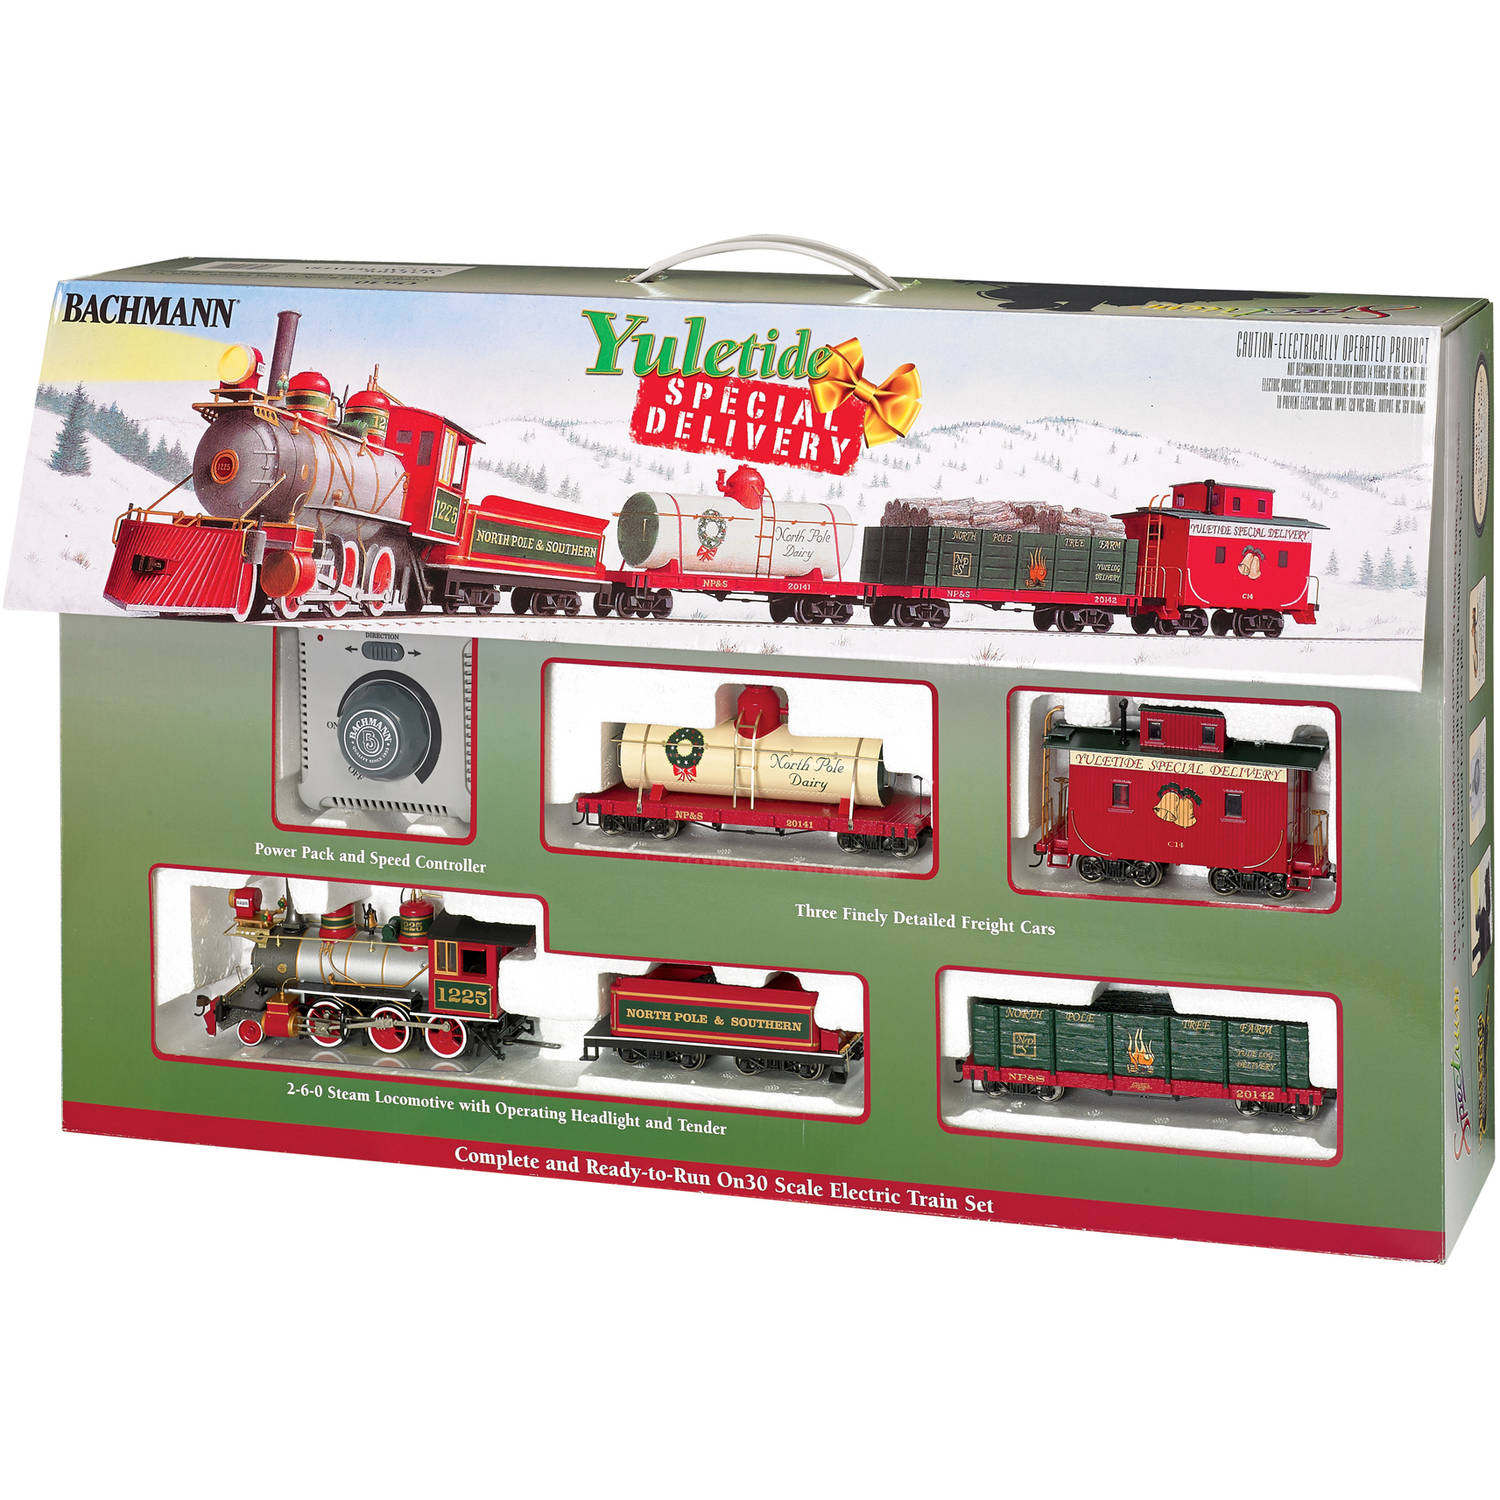 Bachmann Trains Yuletide Special Delivery On30 Scale Ready-To-Run Electric Train Set